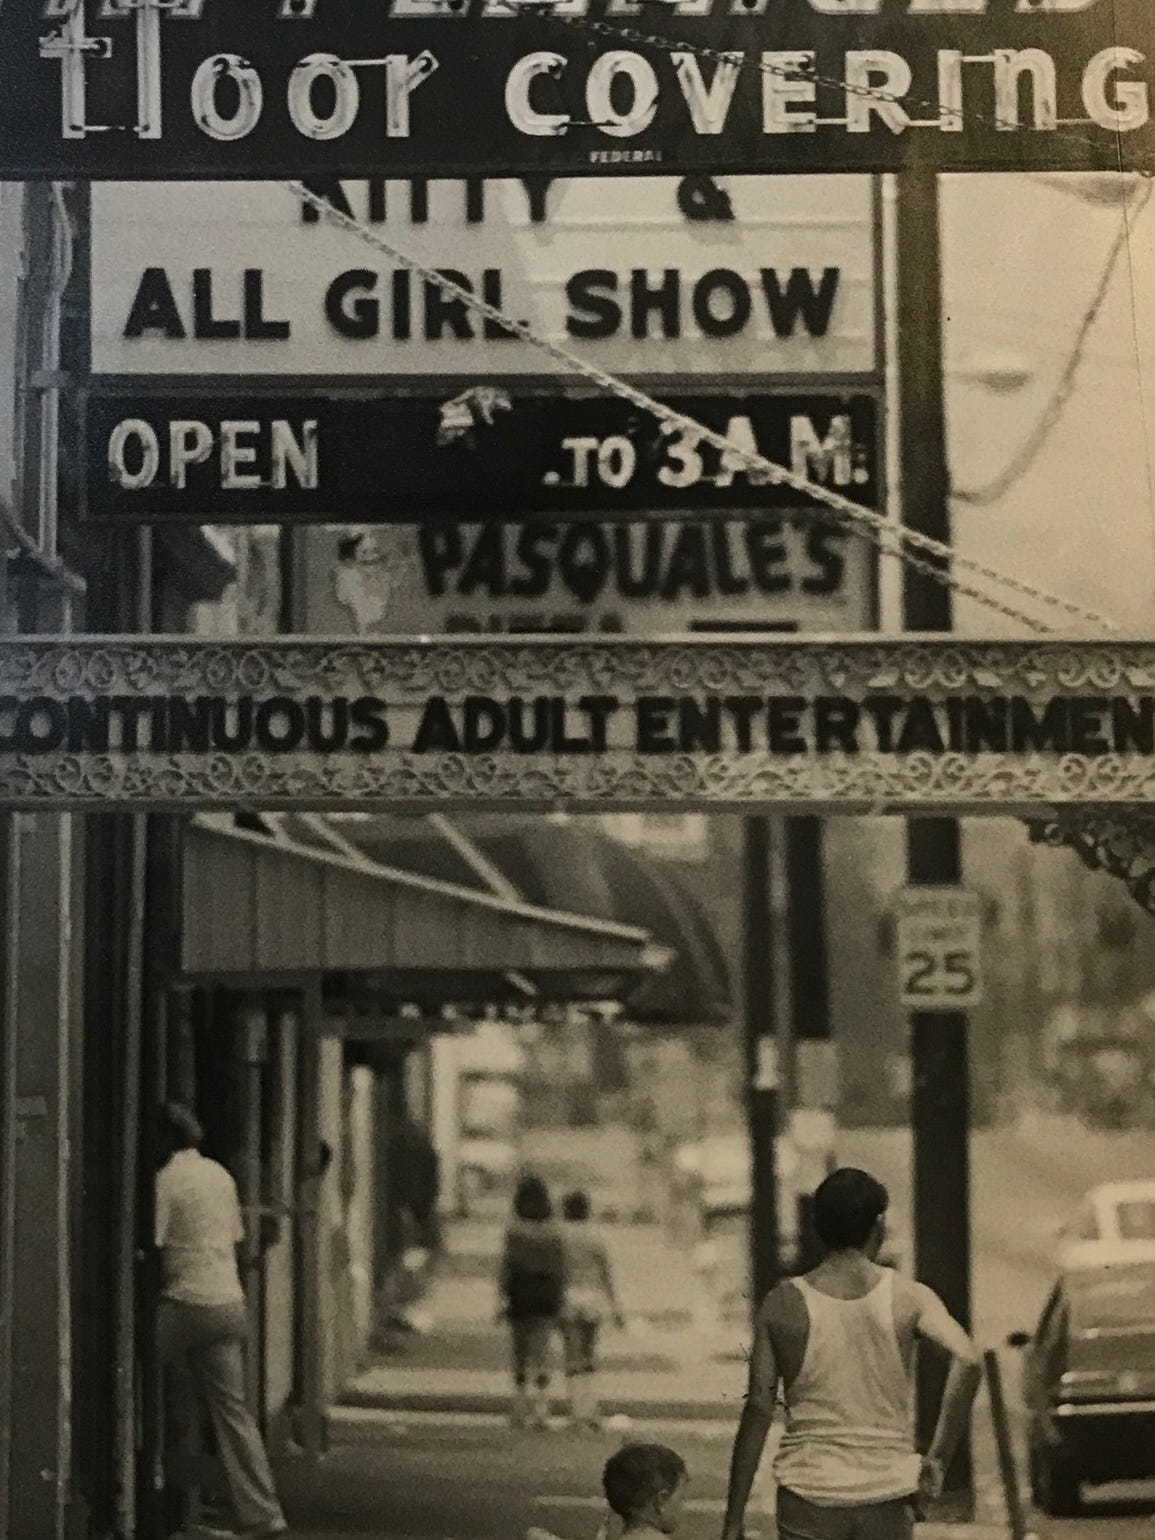 The streets of downtown Newport, Kentucky, were lined with strip clubs and bars for decades. In the 1980s, a reform commission was elected to try to clean up the city's streets -- and its image. Enquirer file